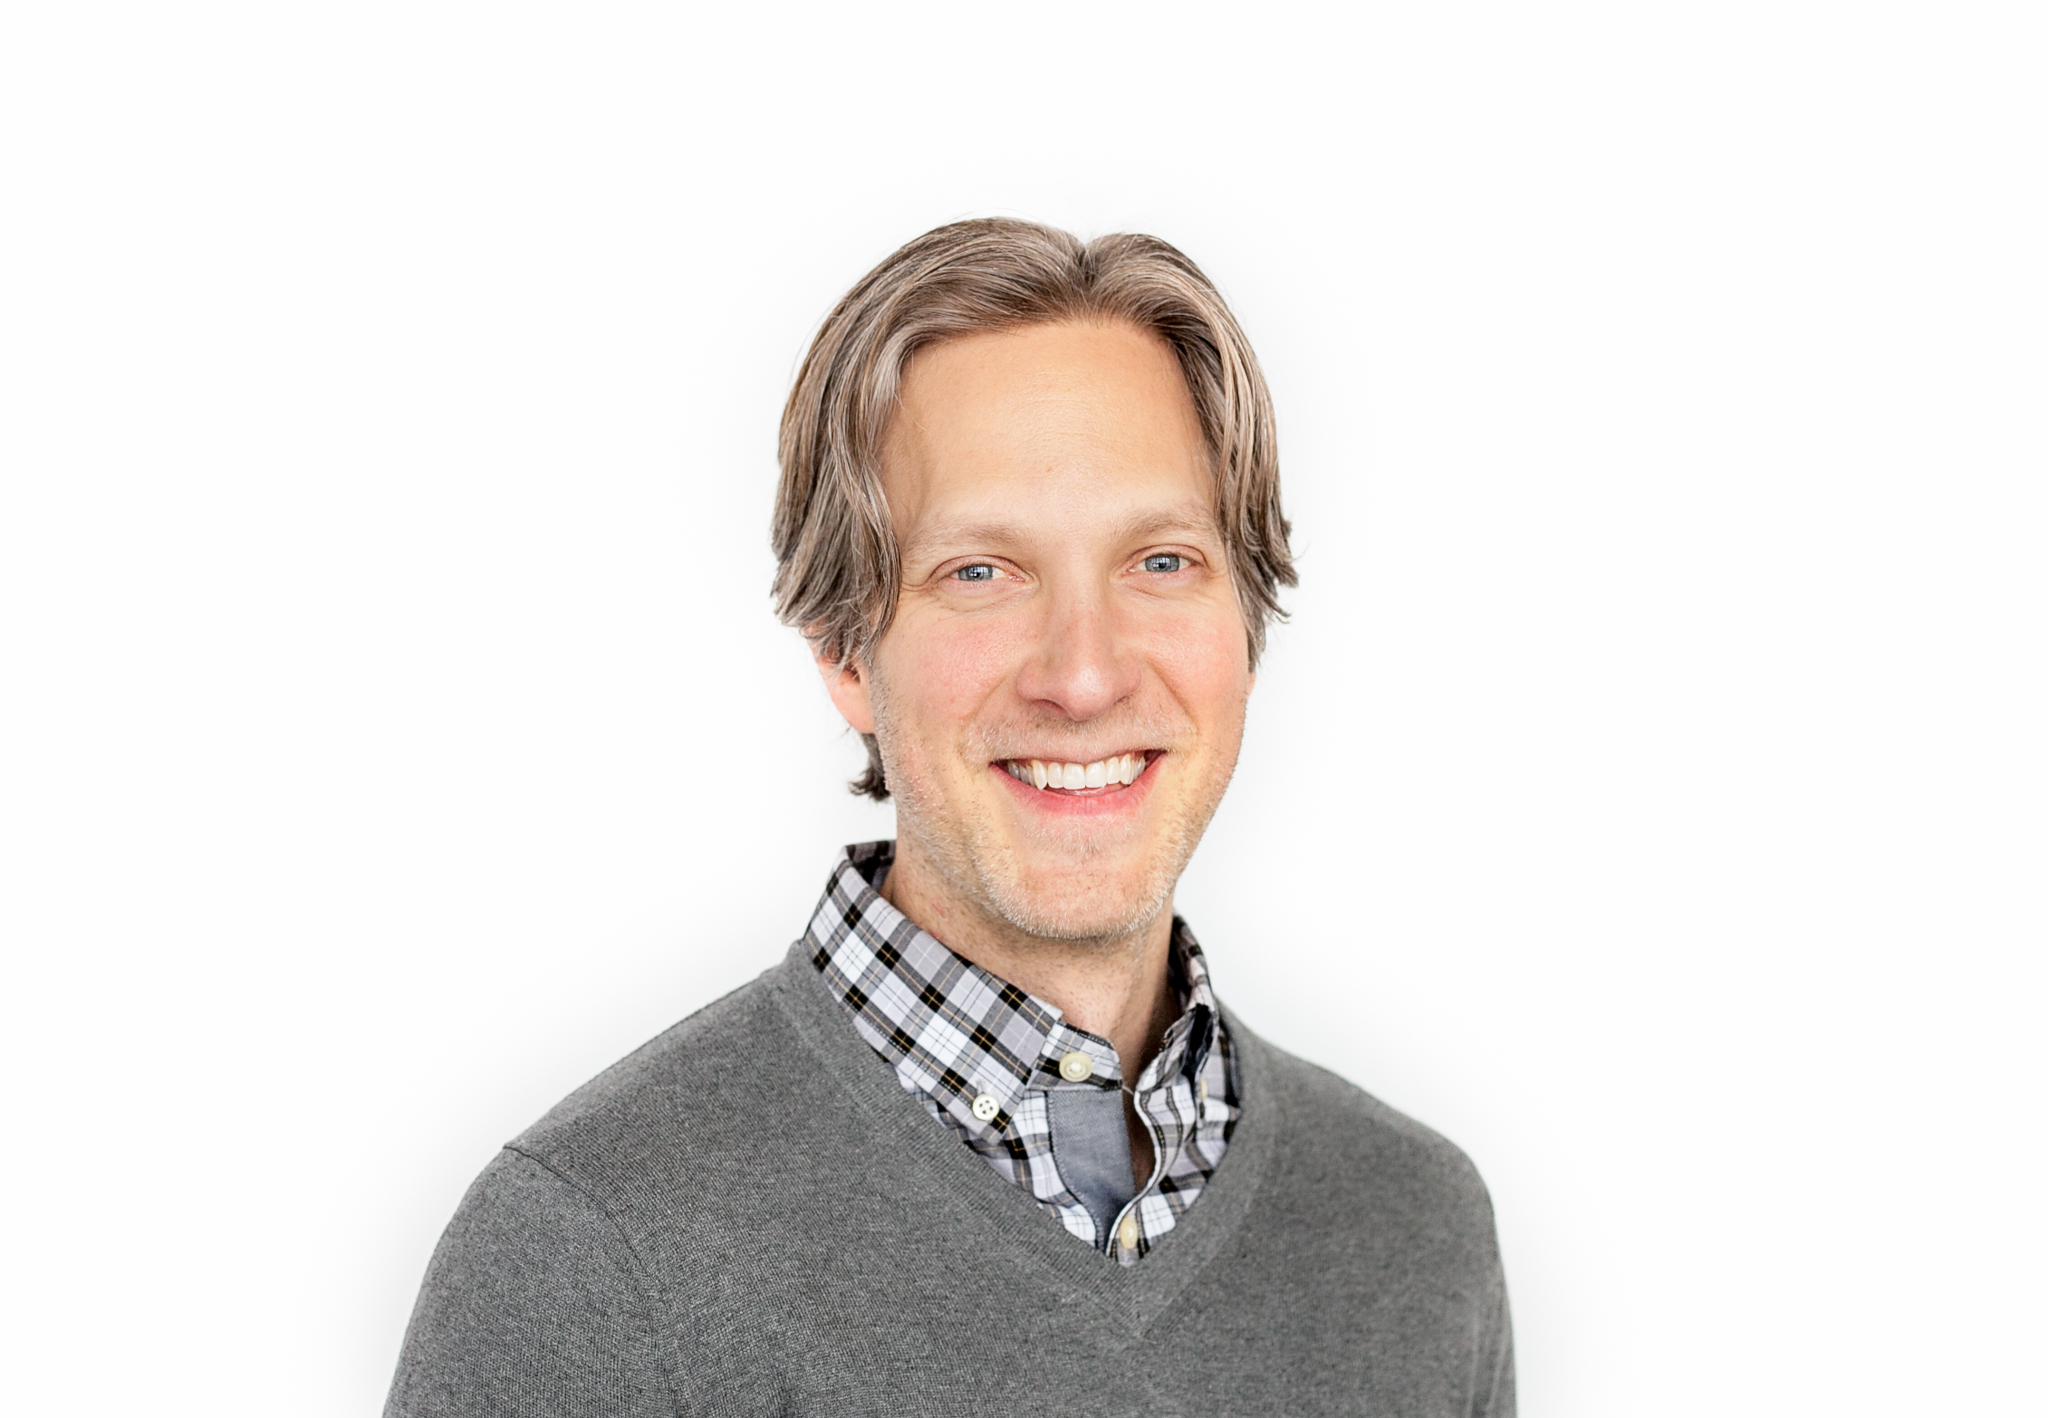 53 Randy Spelling – How to Stop Feeling Stressed & Have More Fun in the Present